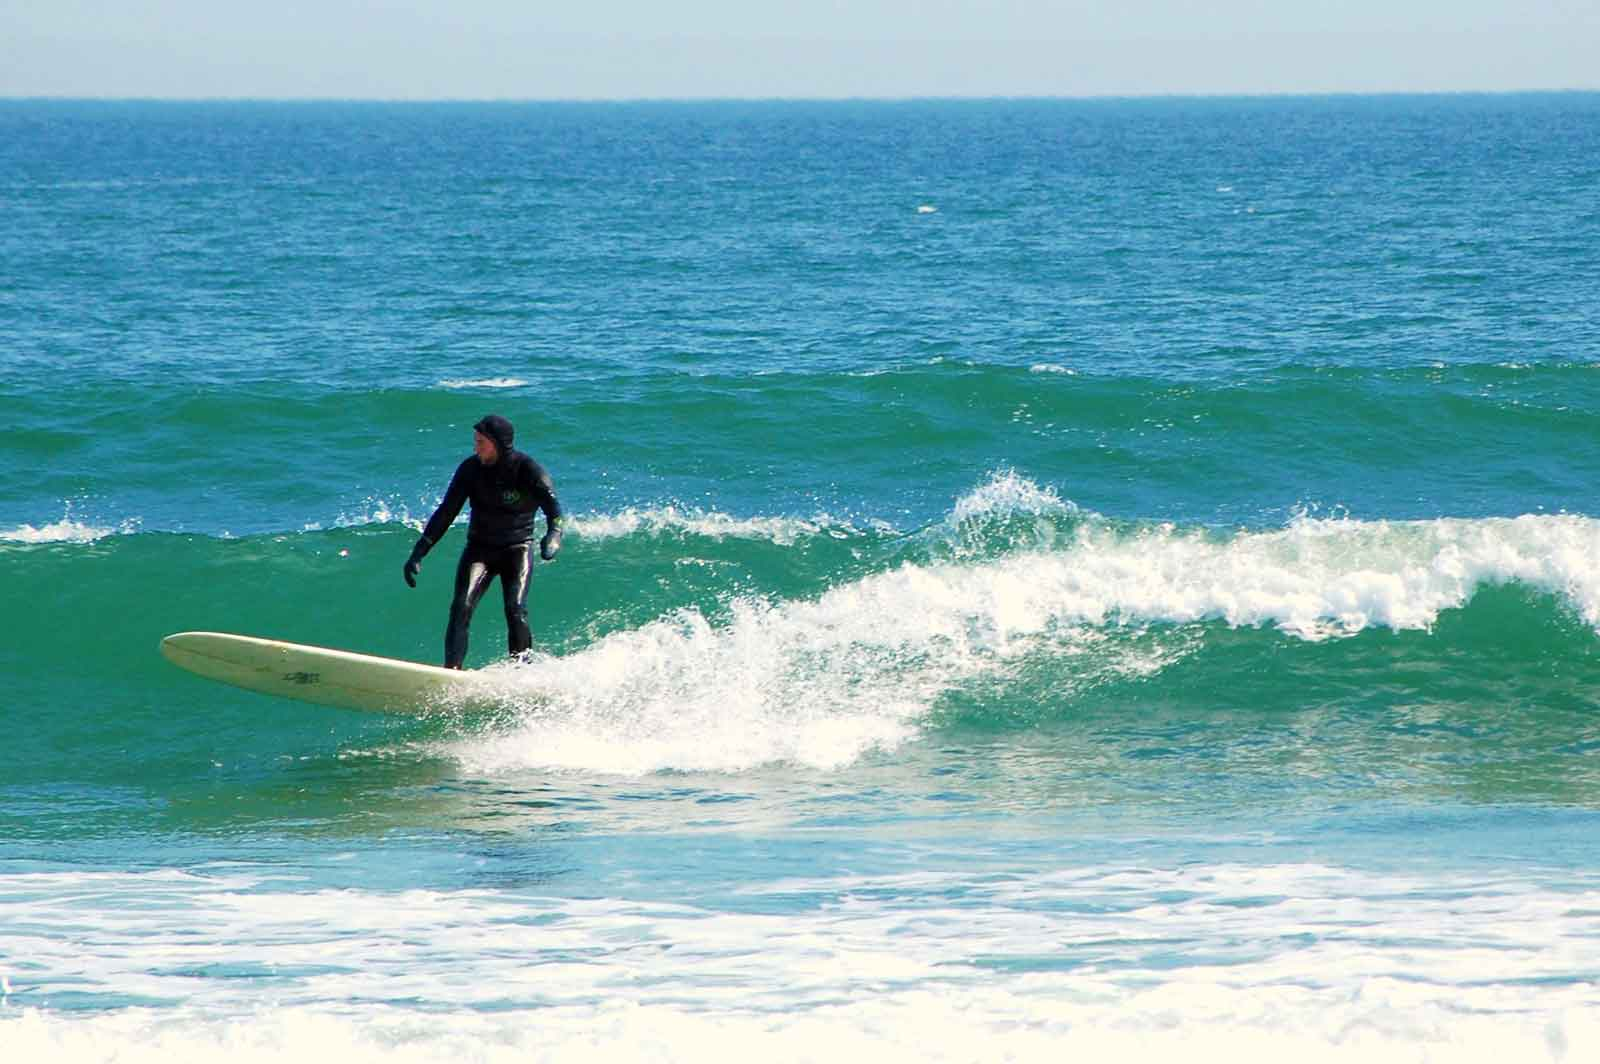 25 Useful Tips for Beginner Surfers